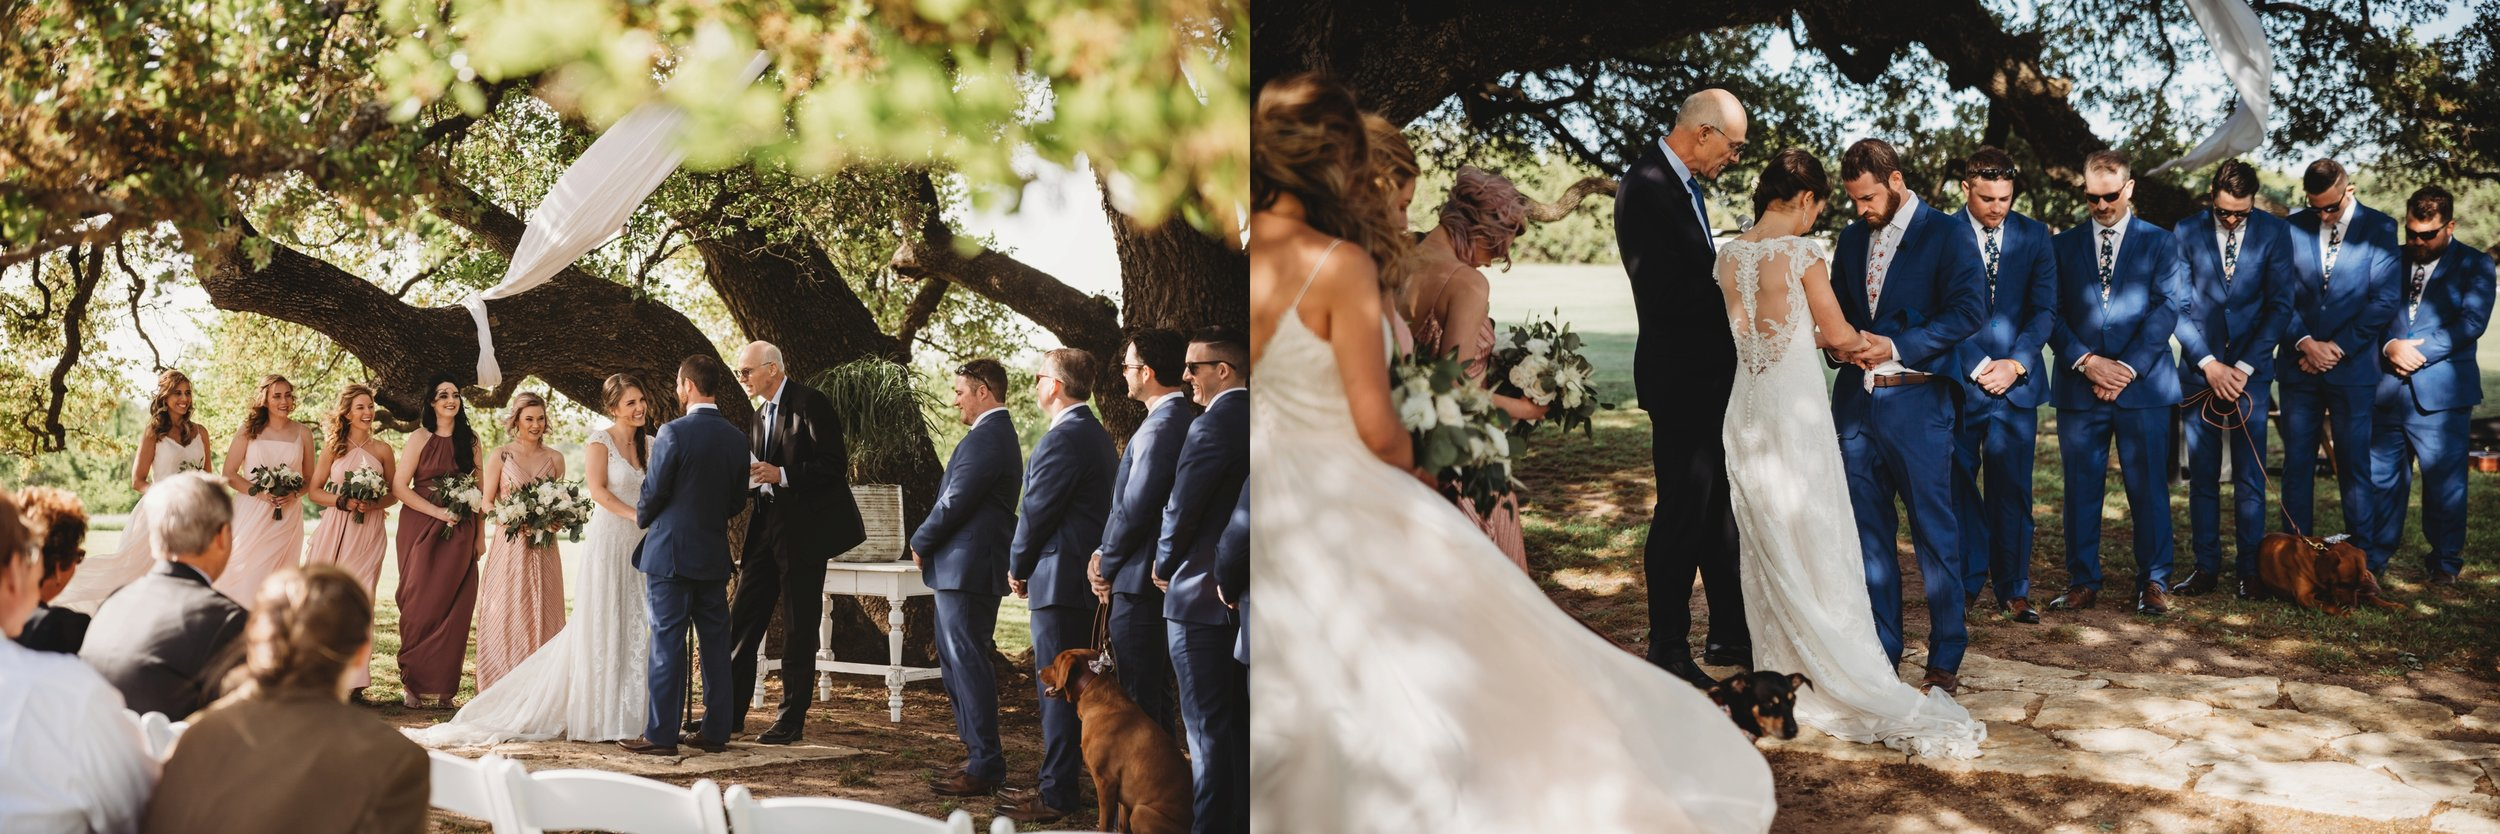 The-White-Fiore-Five-Oaks-Farm-Fort-Worth-Wedding-Planner-Ceremony_014.jpg